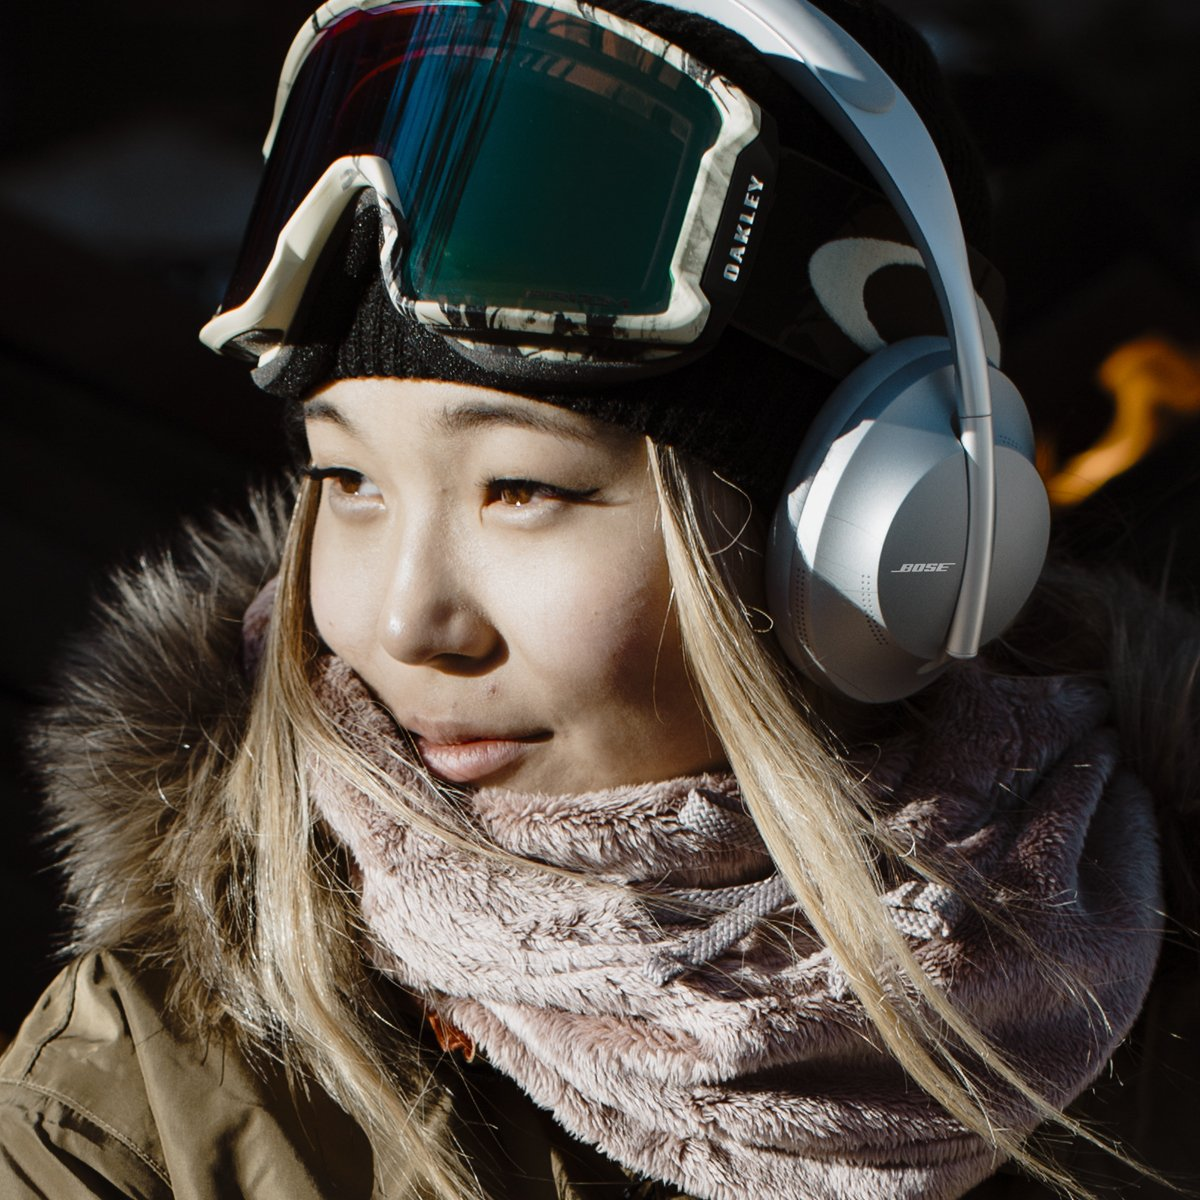 Yes, @ChloeKim! 2019 @ESPYS Best Female Action Sports Athlete. #ESPYS #BoseHeadphones https://bose.life/2HIy7K7